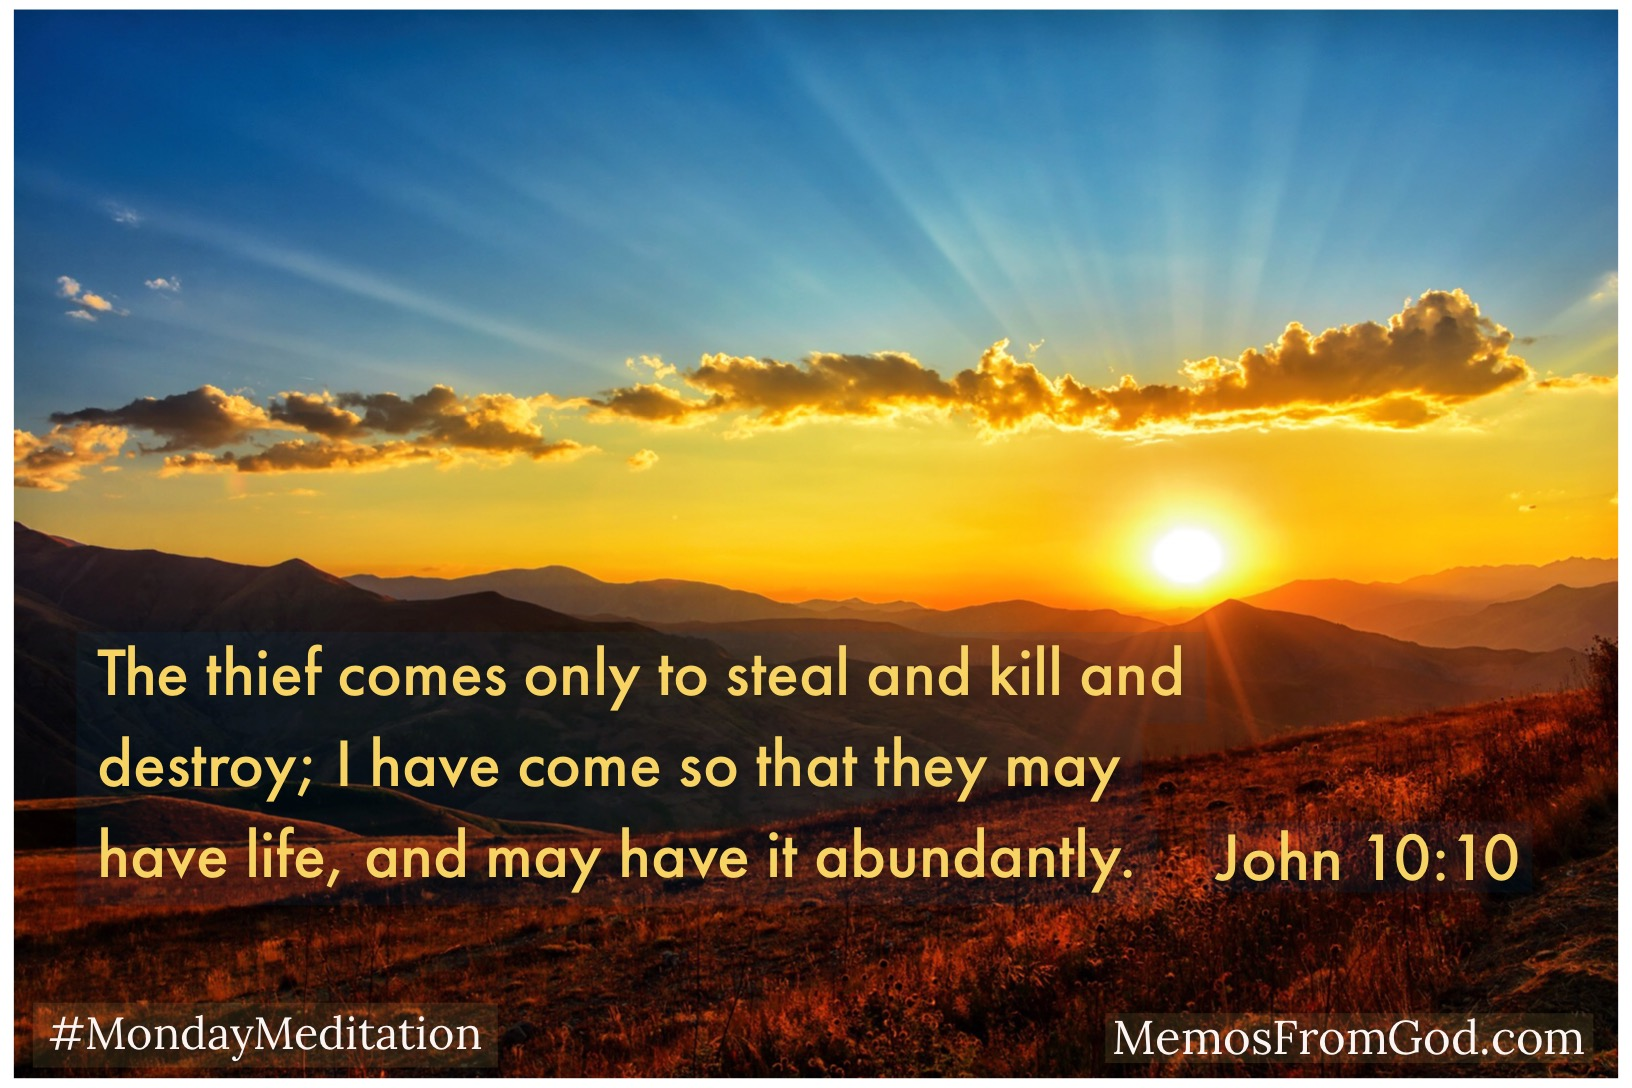 The thief comes only to steal and kill and destroy; I have come so that they may have life, and may have it abundantly. John 10:10